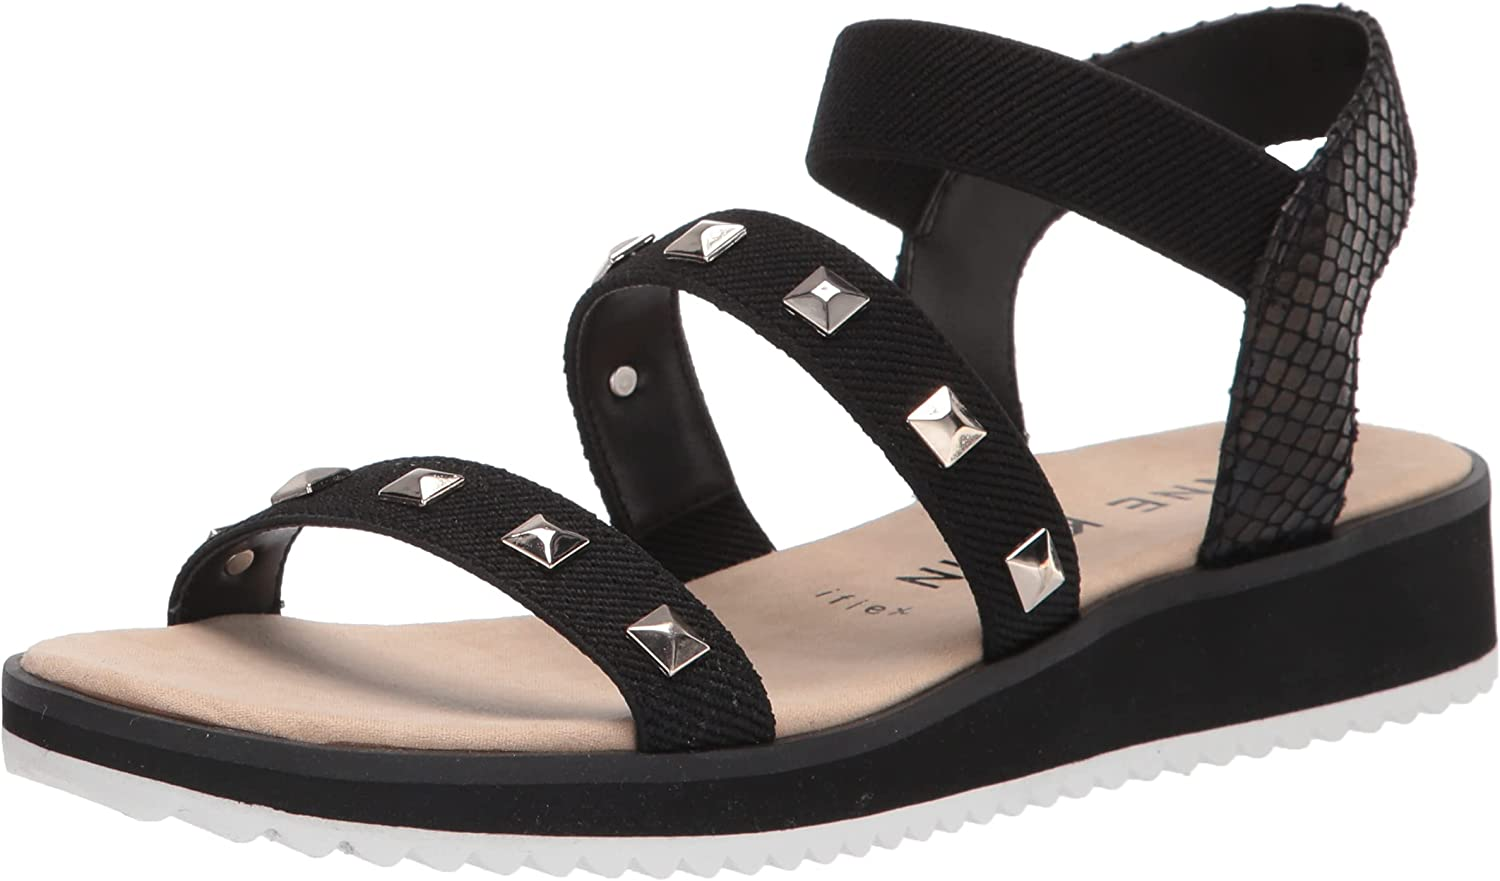 Anne Klein Women's At the price of surprise Wedge Marcelina depot Sandal